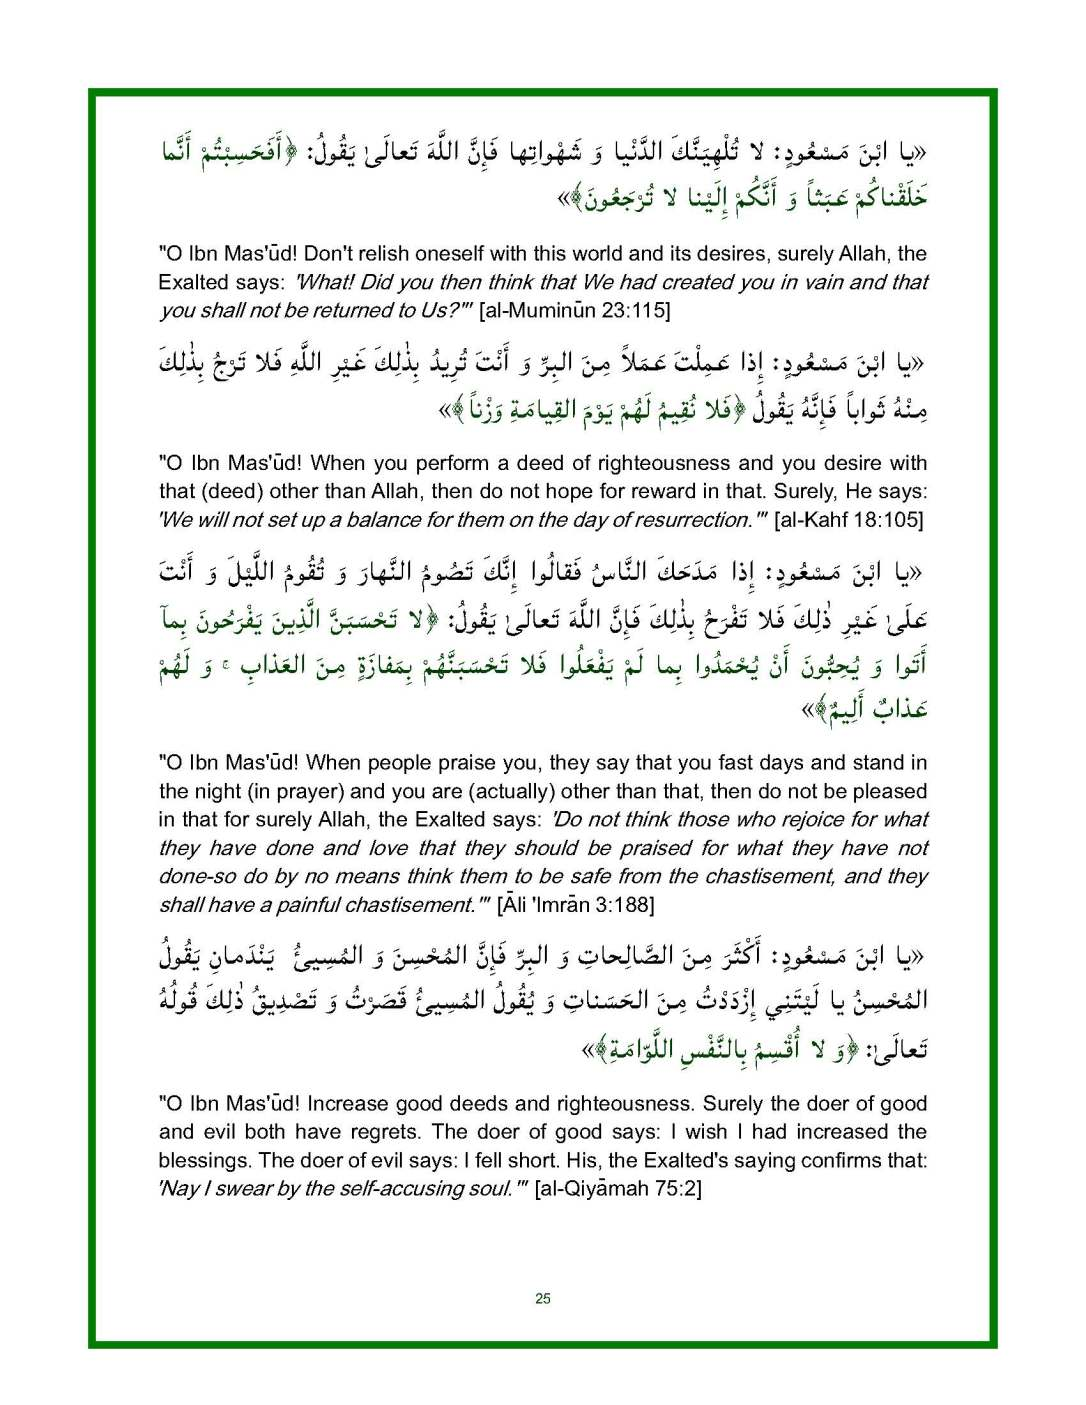 Spiritual-Advice-of-the-Messenger-of-Allah-for-Ibn-Masud-unlocked_Page_25